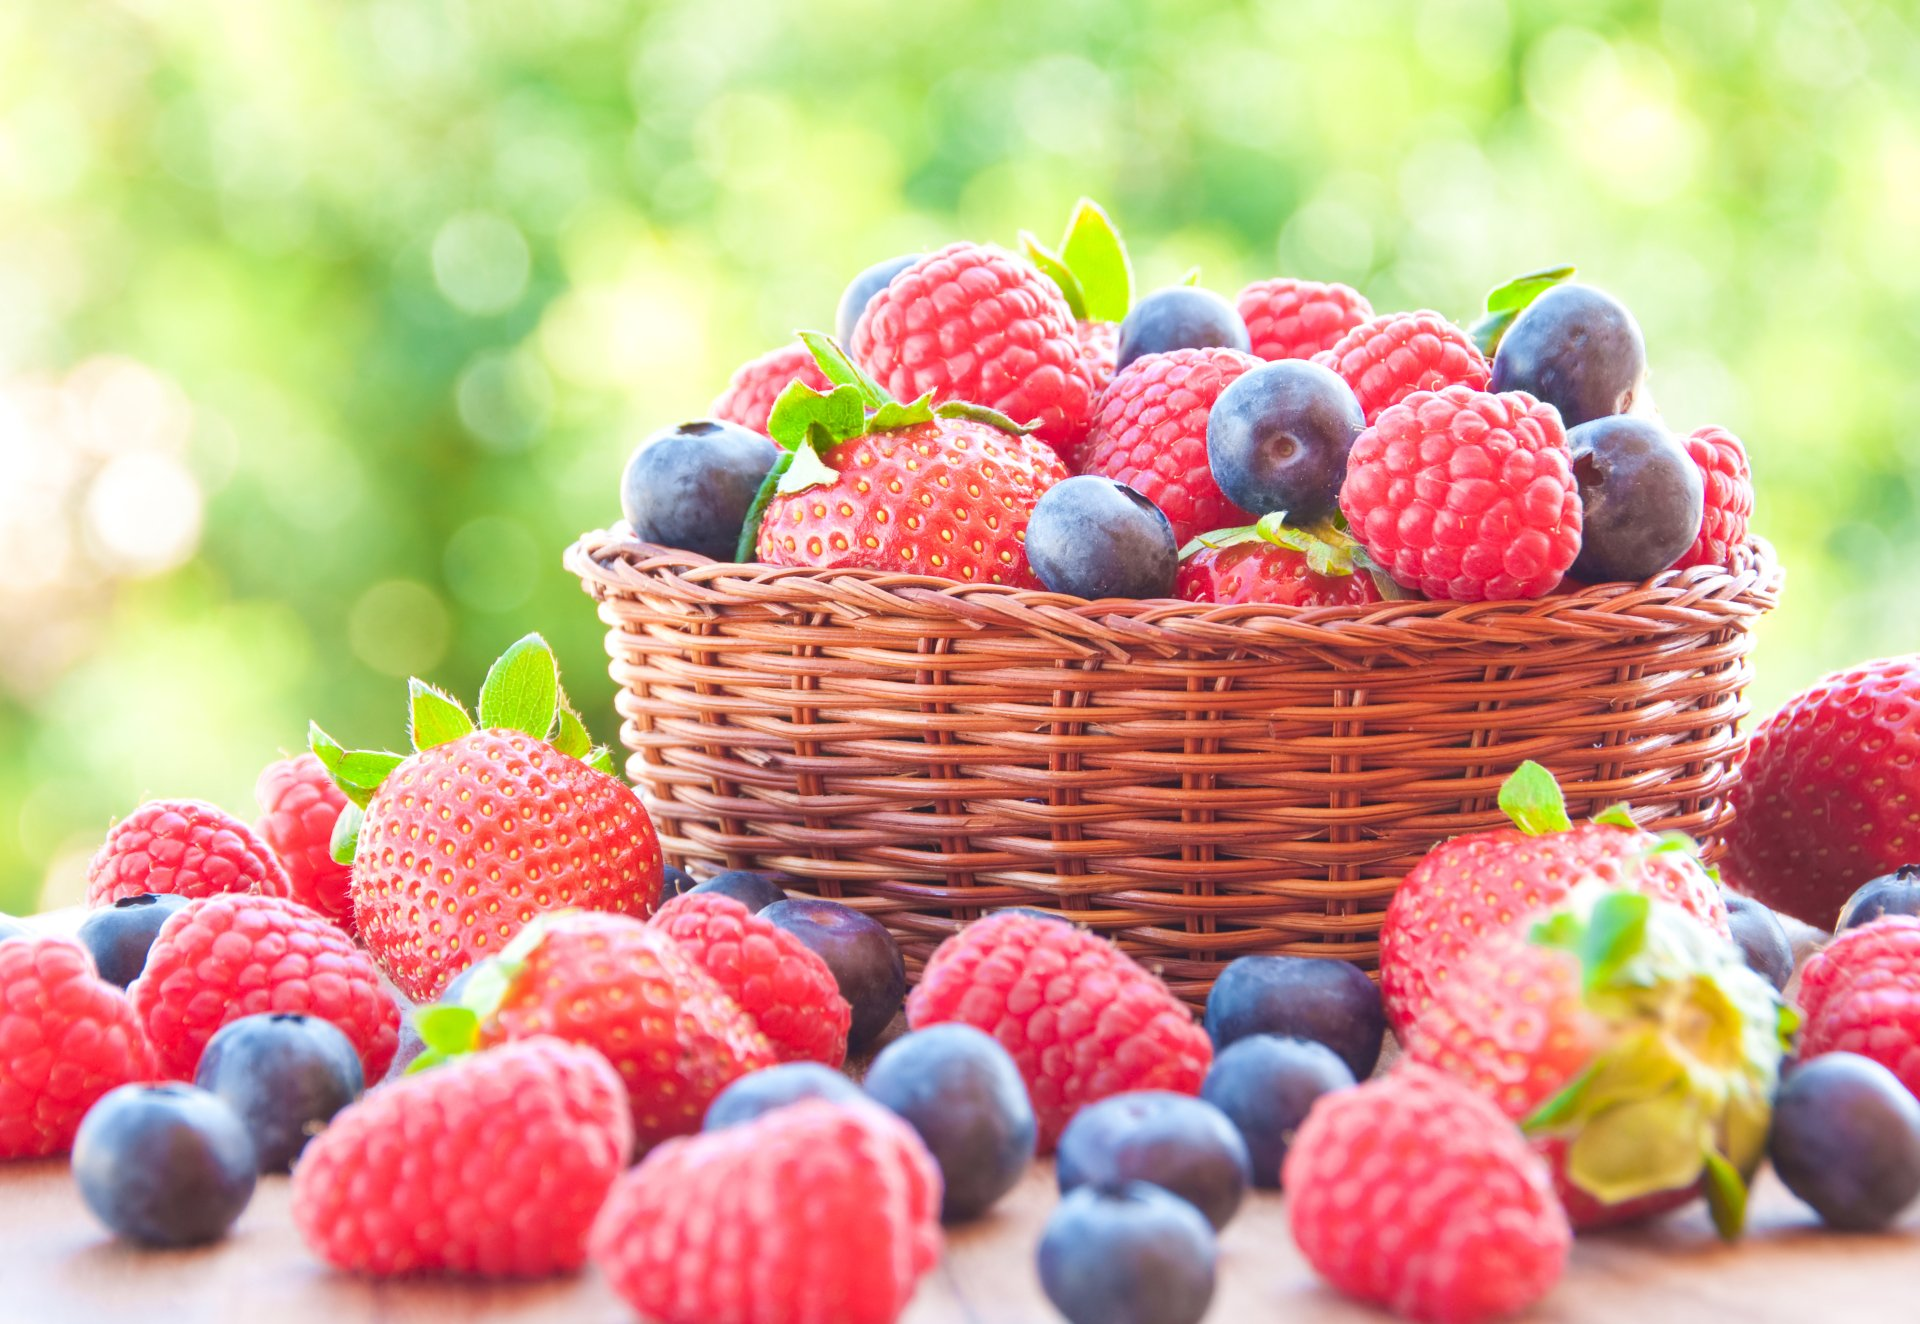 Food - Berry  Basket Strawberry Blueberry Raspberry Wallpaper